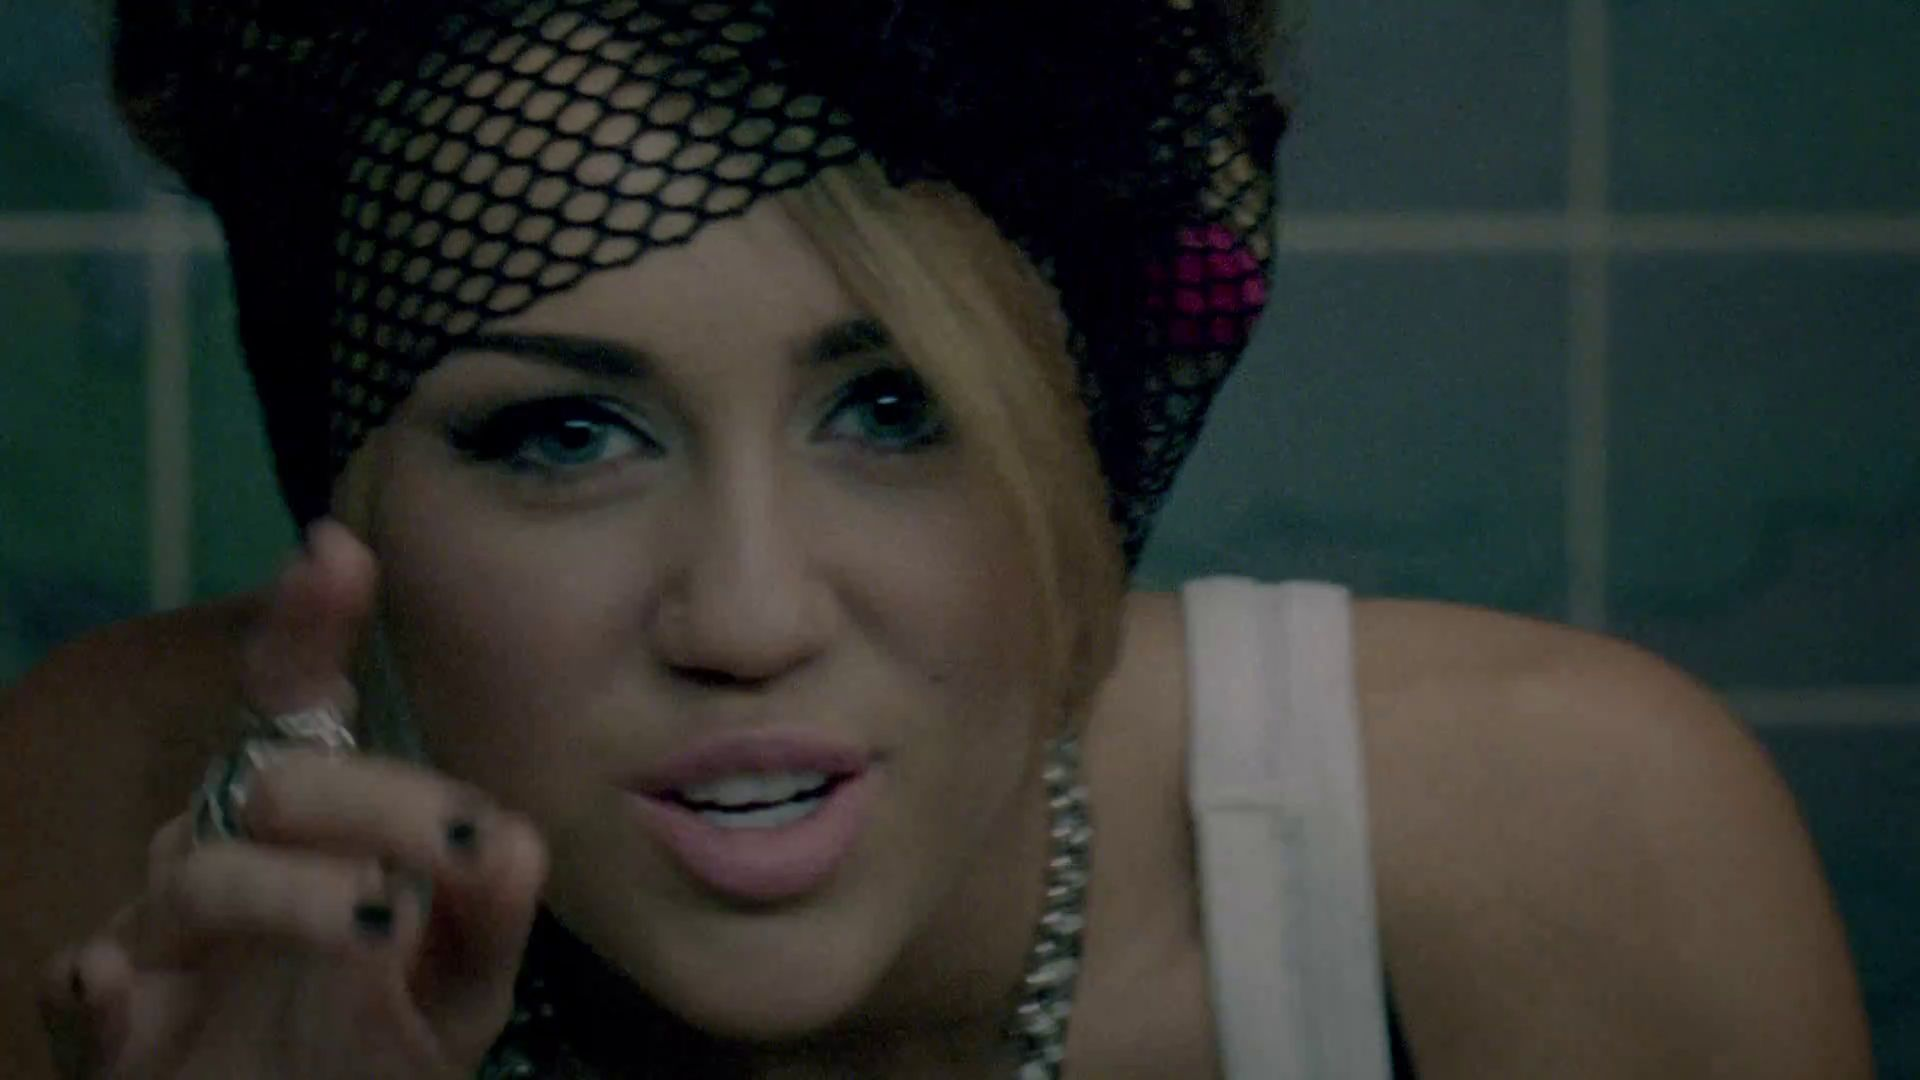 Who-Owns-My-Heart-miley-cyrus-22421791-1920-1080.jpg